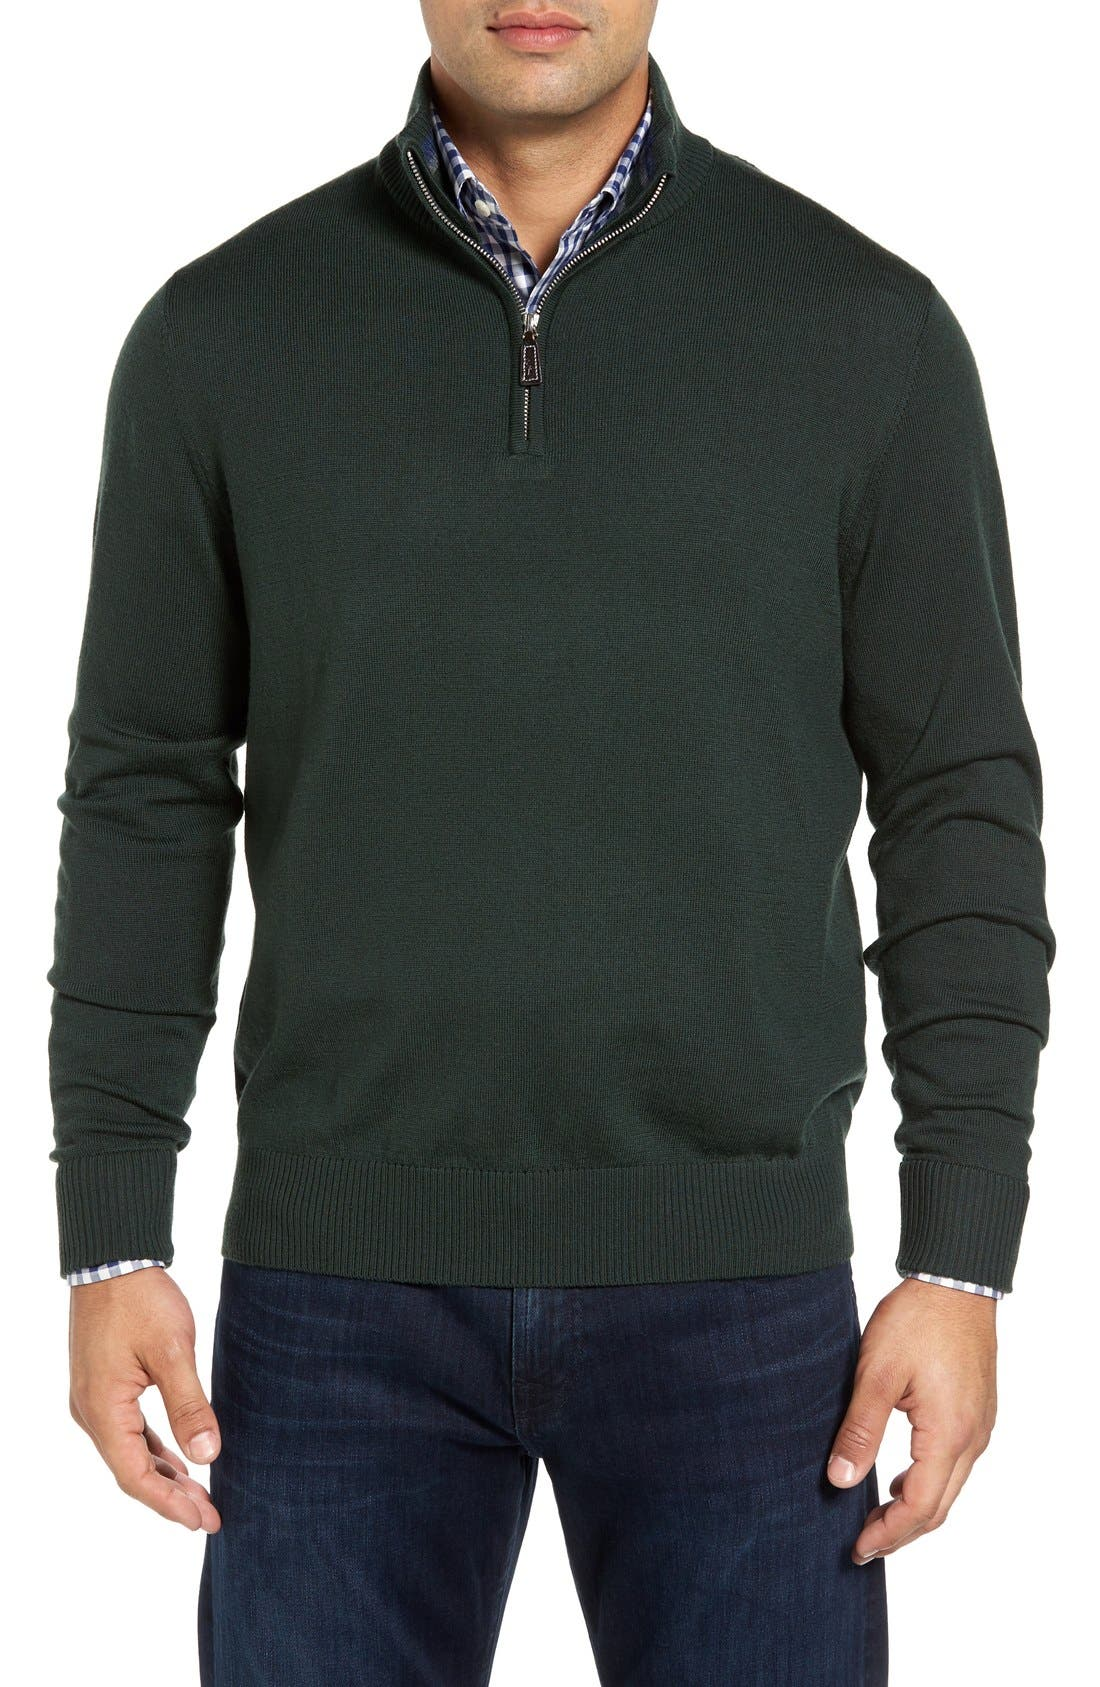 Alternate Image 1 Selected - TailorByrd S.Cascade Quarter Zip Wool Sweater